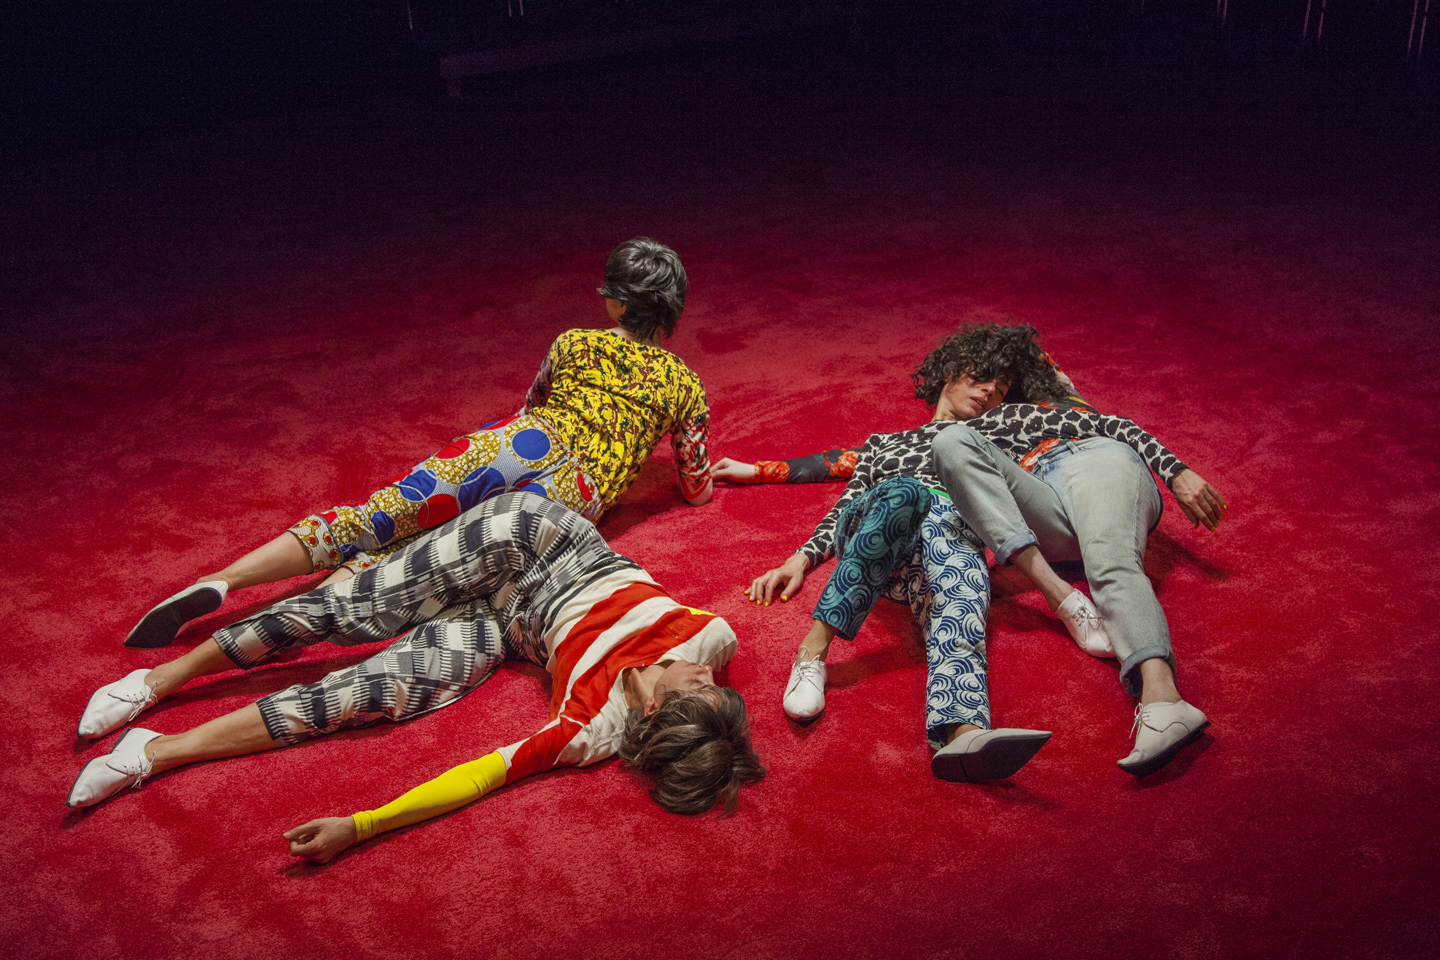 Maria Hassabi, Staged. Performers in coloured costumes on red carpet